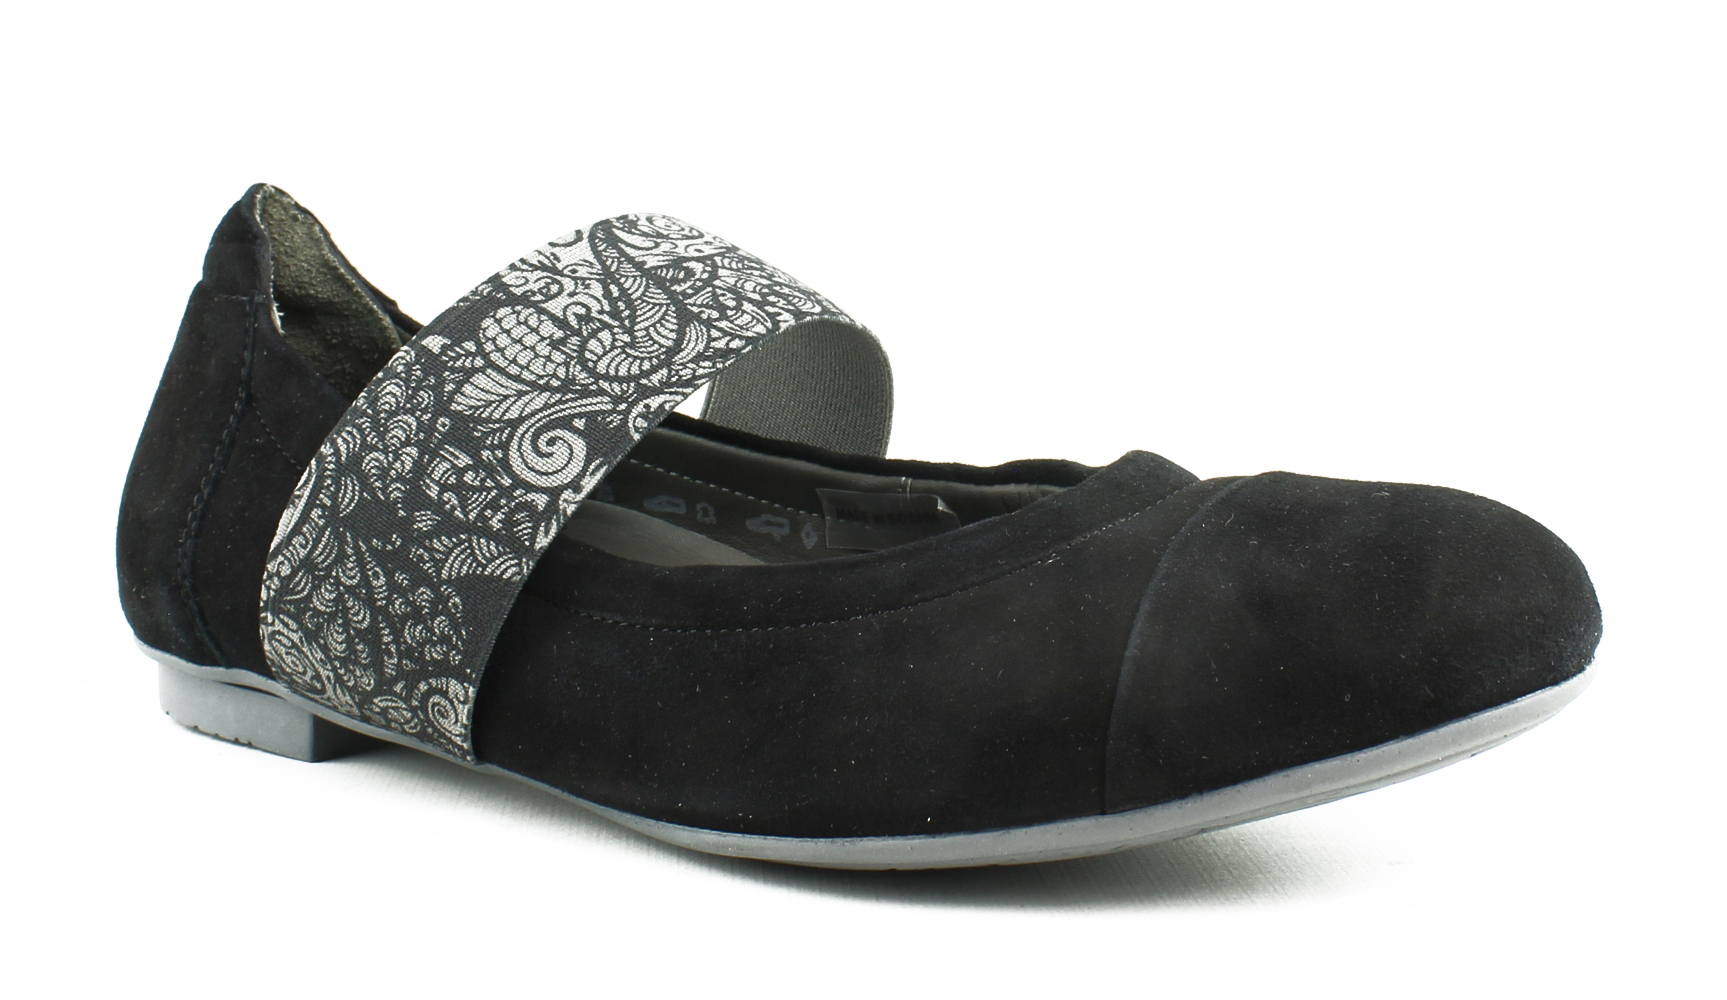 New Think! Womens 86168-09-001 Black kombi Ballet Flats Size 5 by Think!